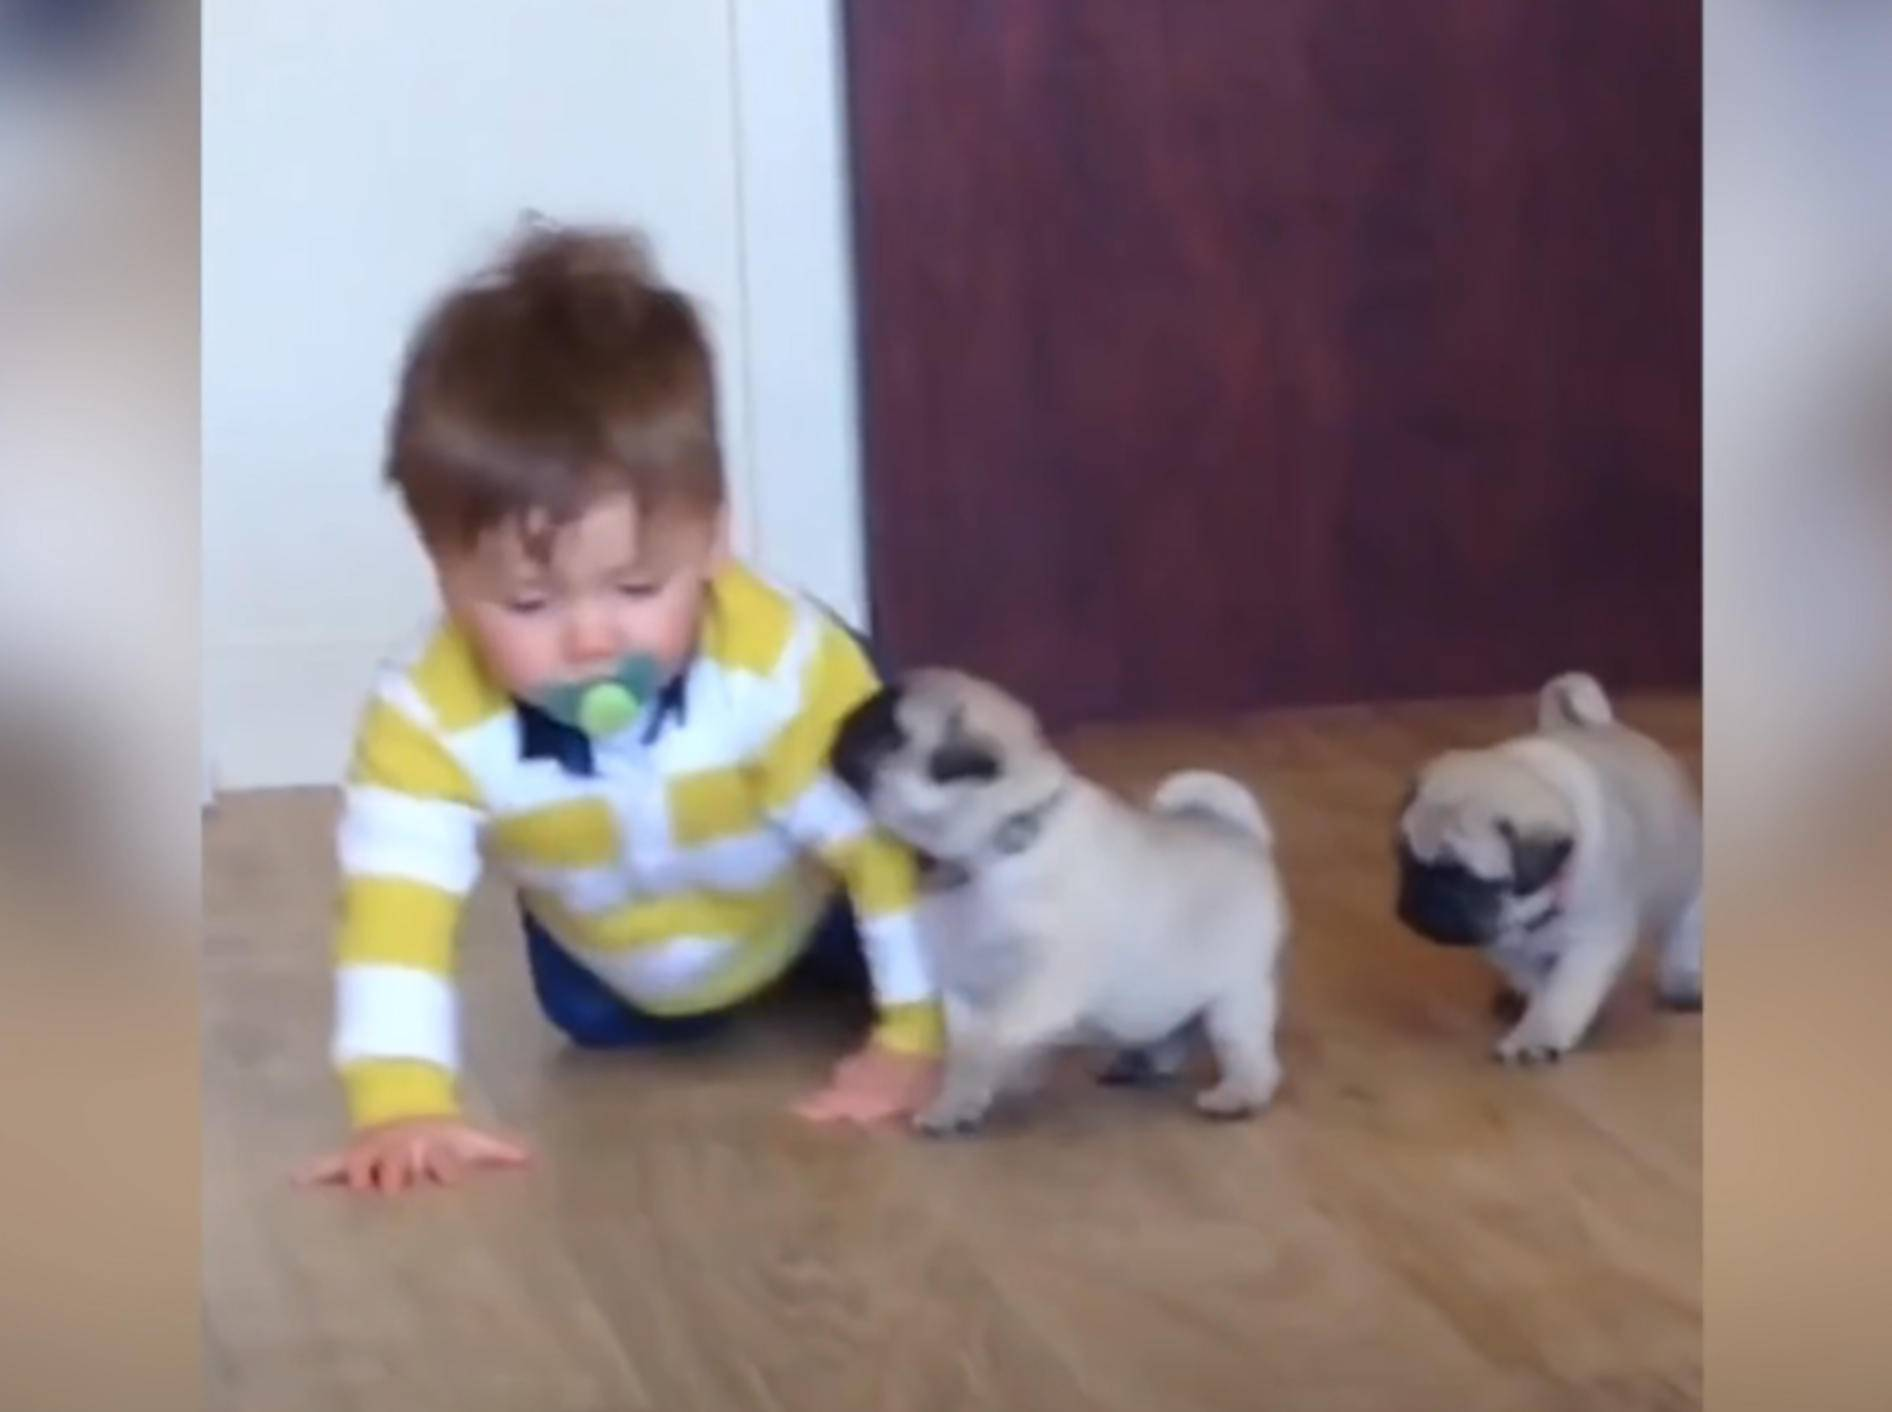 Baby Louie und Mopswelpen sind allerbeste Kumpels – YouTube / ABC Television Stations